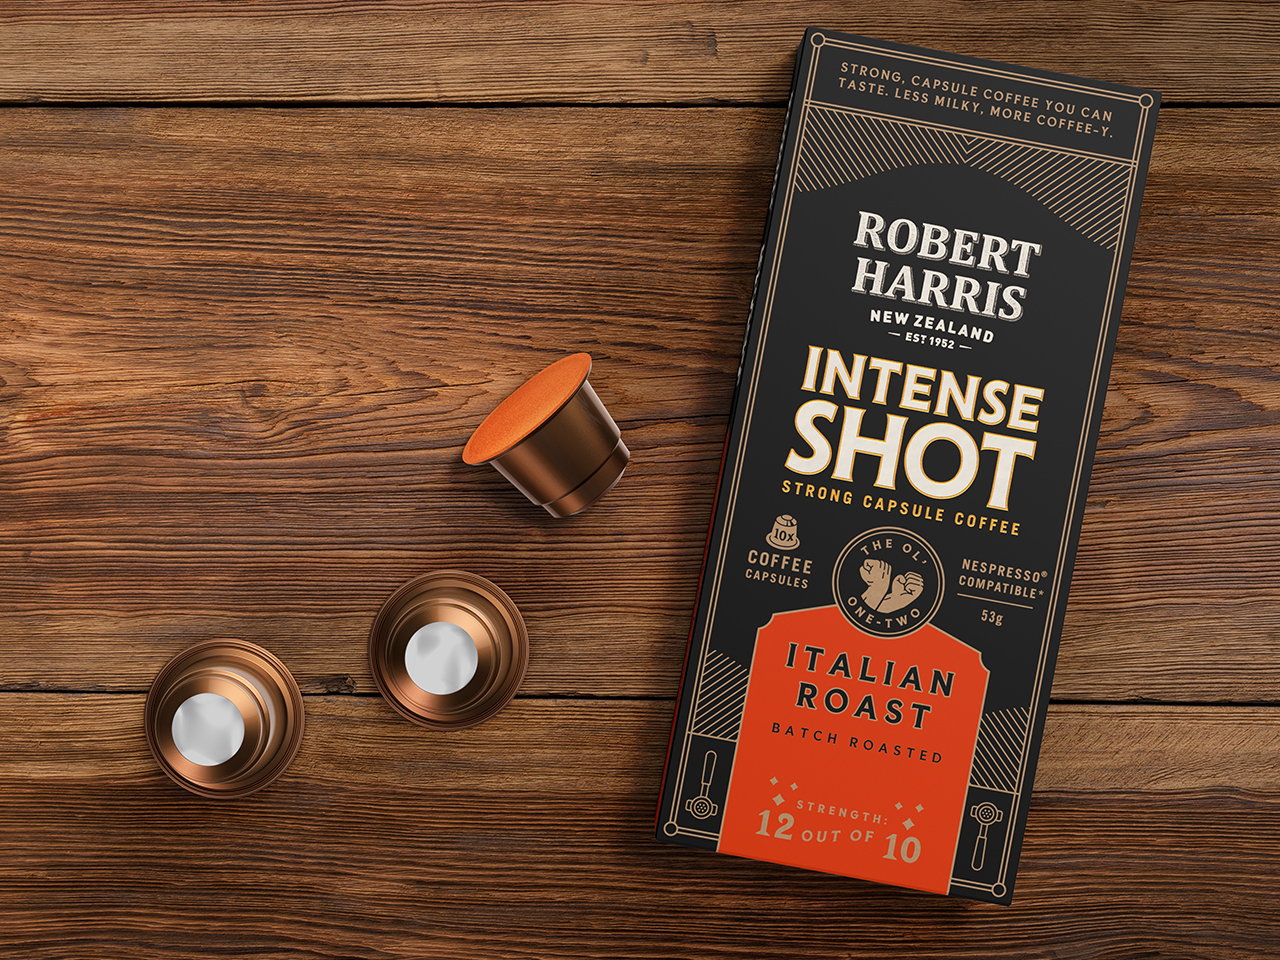 3D render of the new Intense Shot Nespresso coffee capsules from Robert Harris